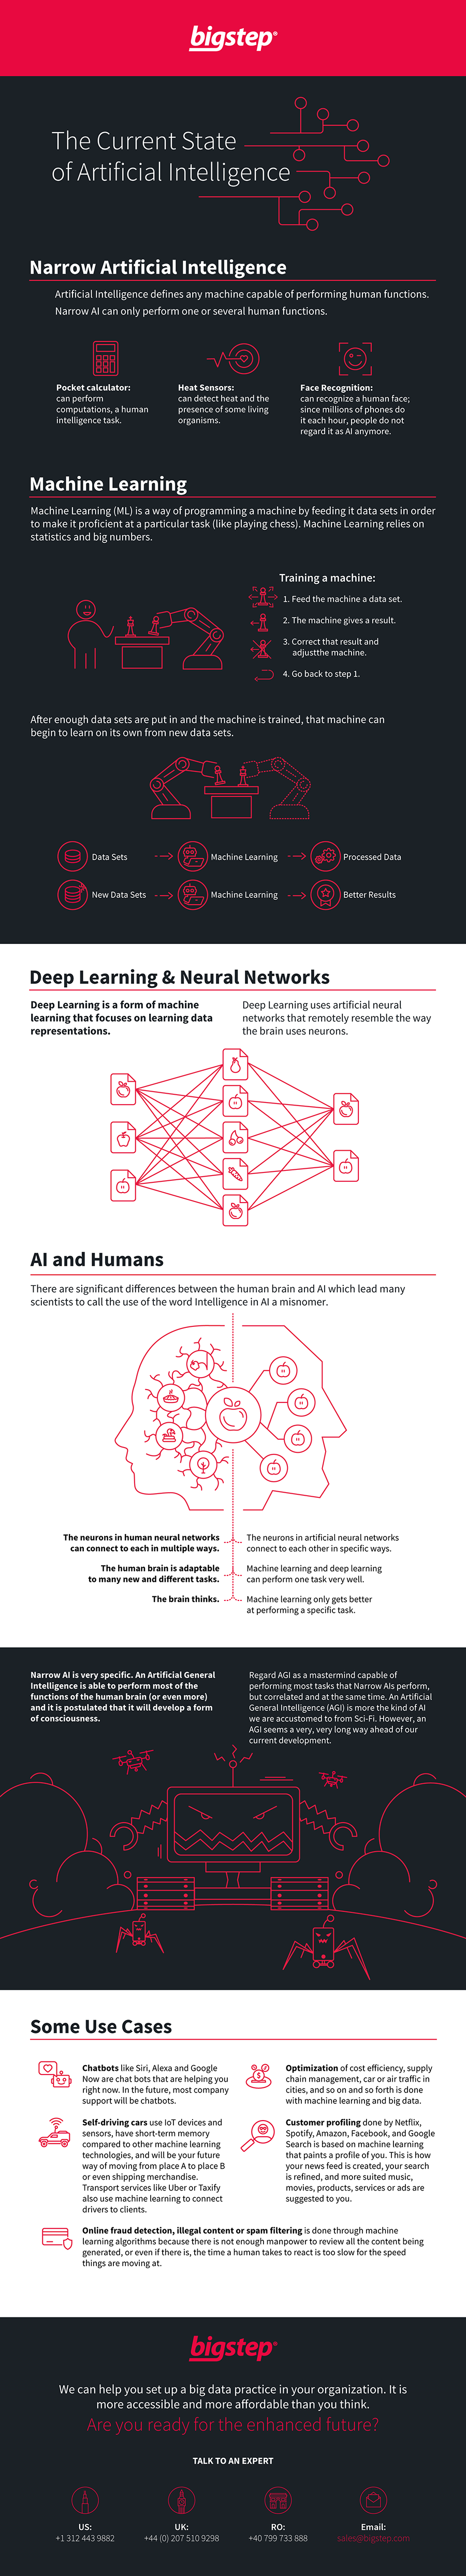 The Current State of Artificial Intelligence - Infographic